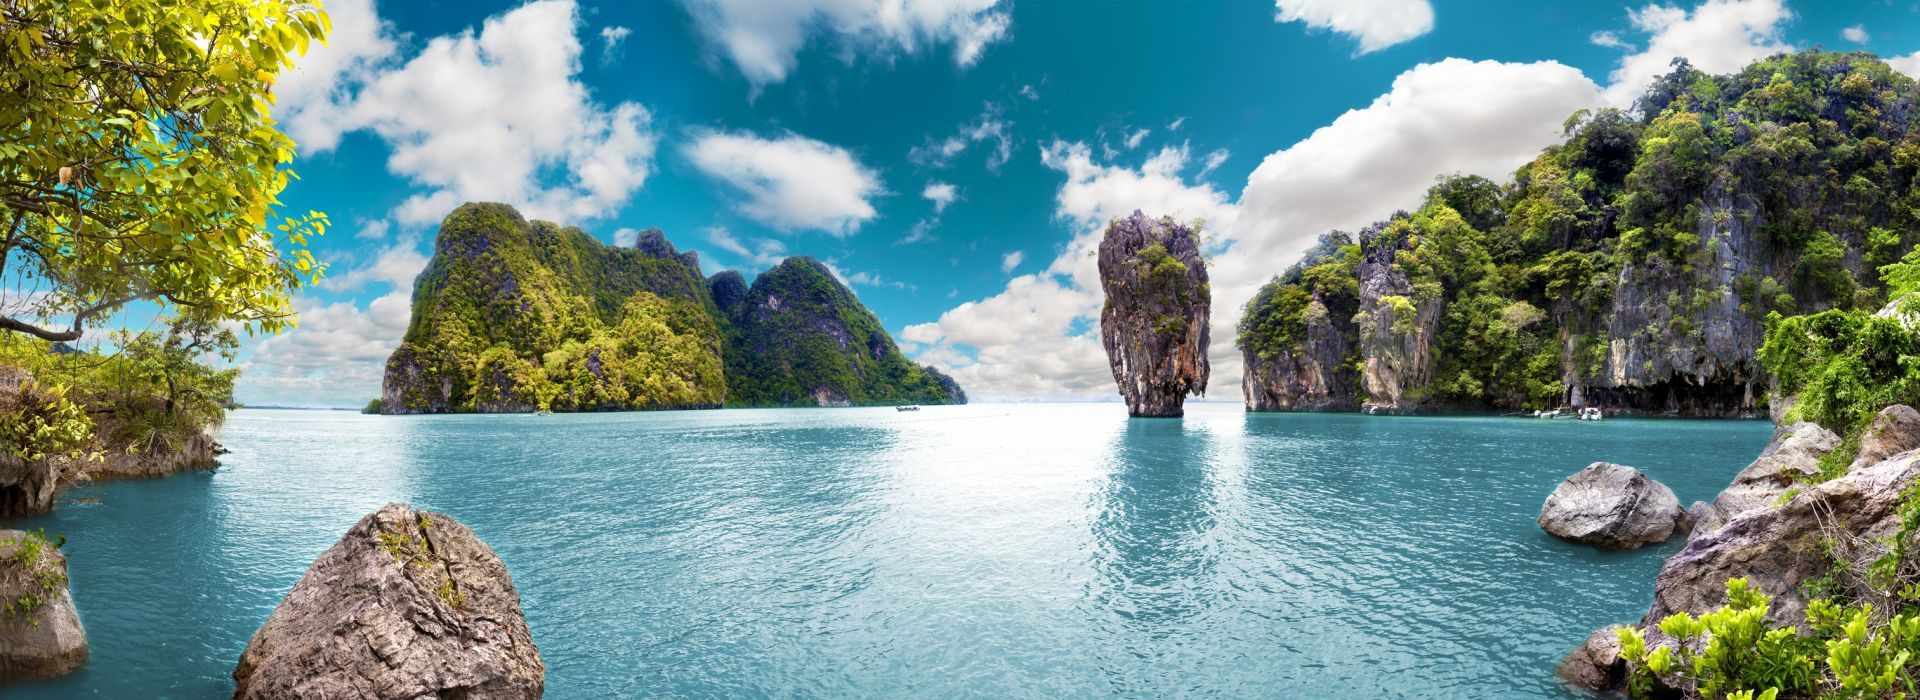 Sightseeing, attractions, culture and history Tours in Thailand